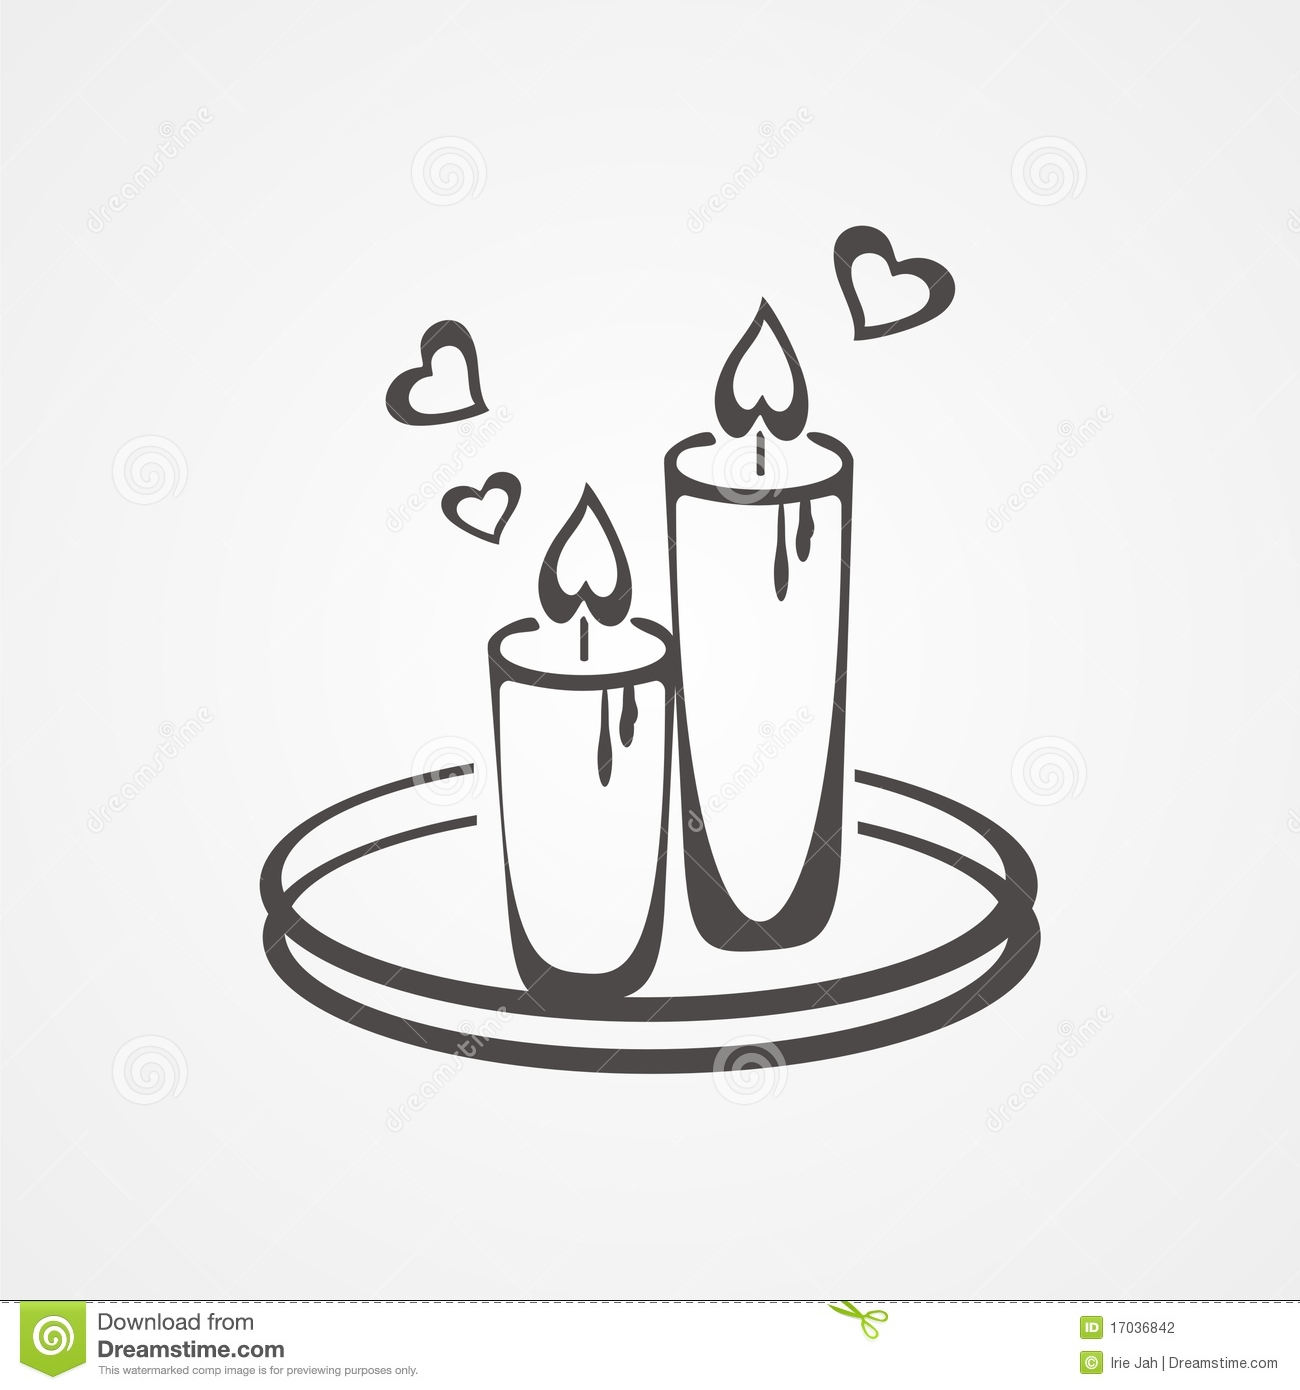 Wedding candles clipart 5 » Clipart Station.